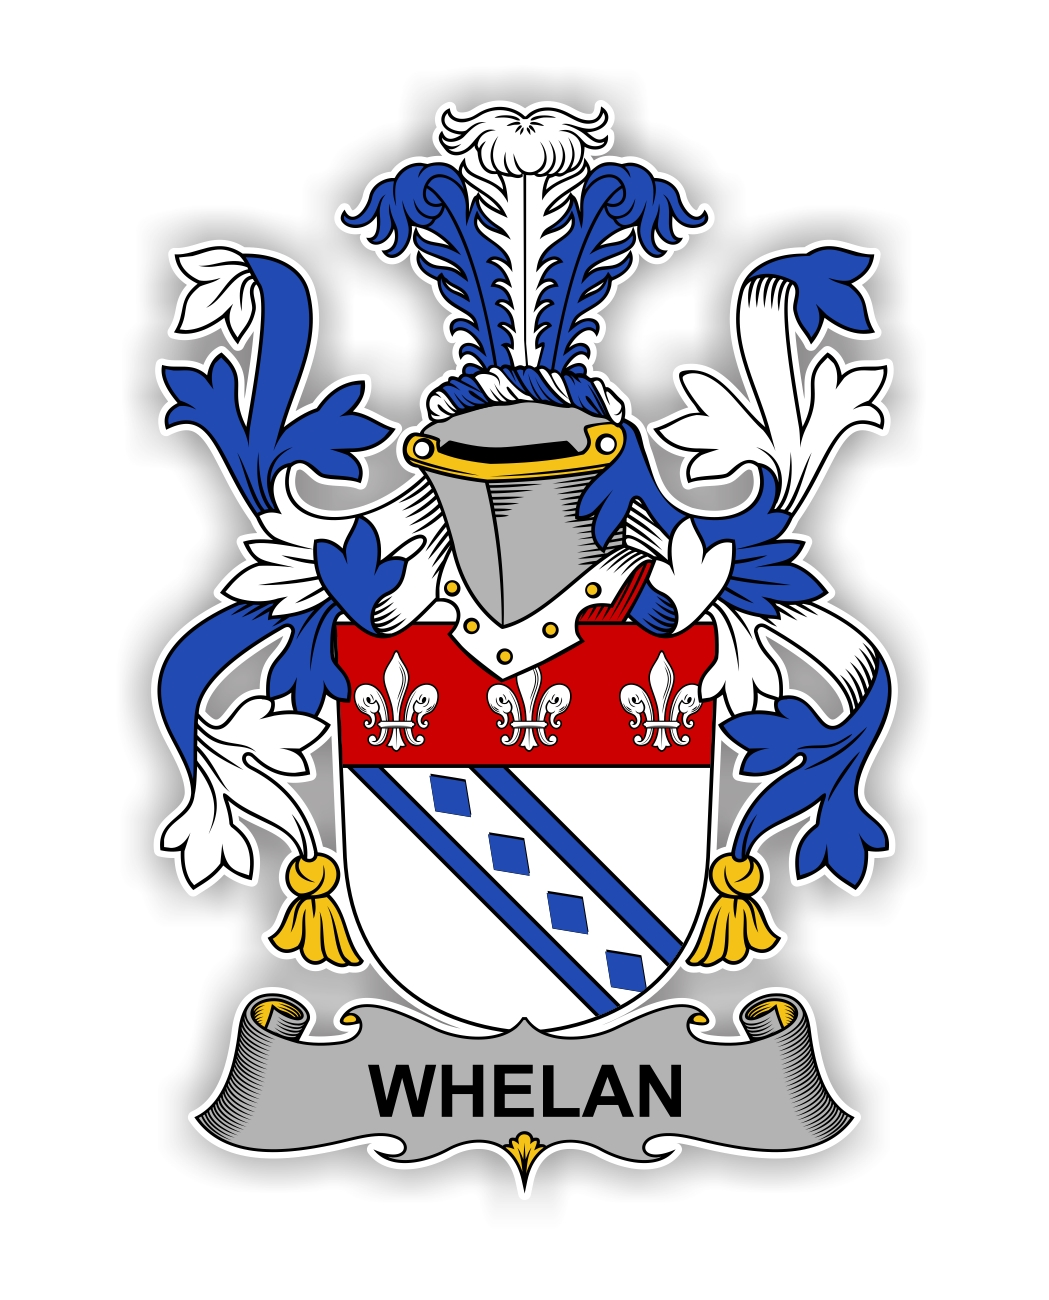 Whelan Security | Top Employers for Military